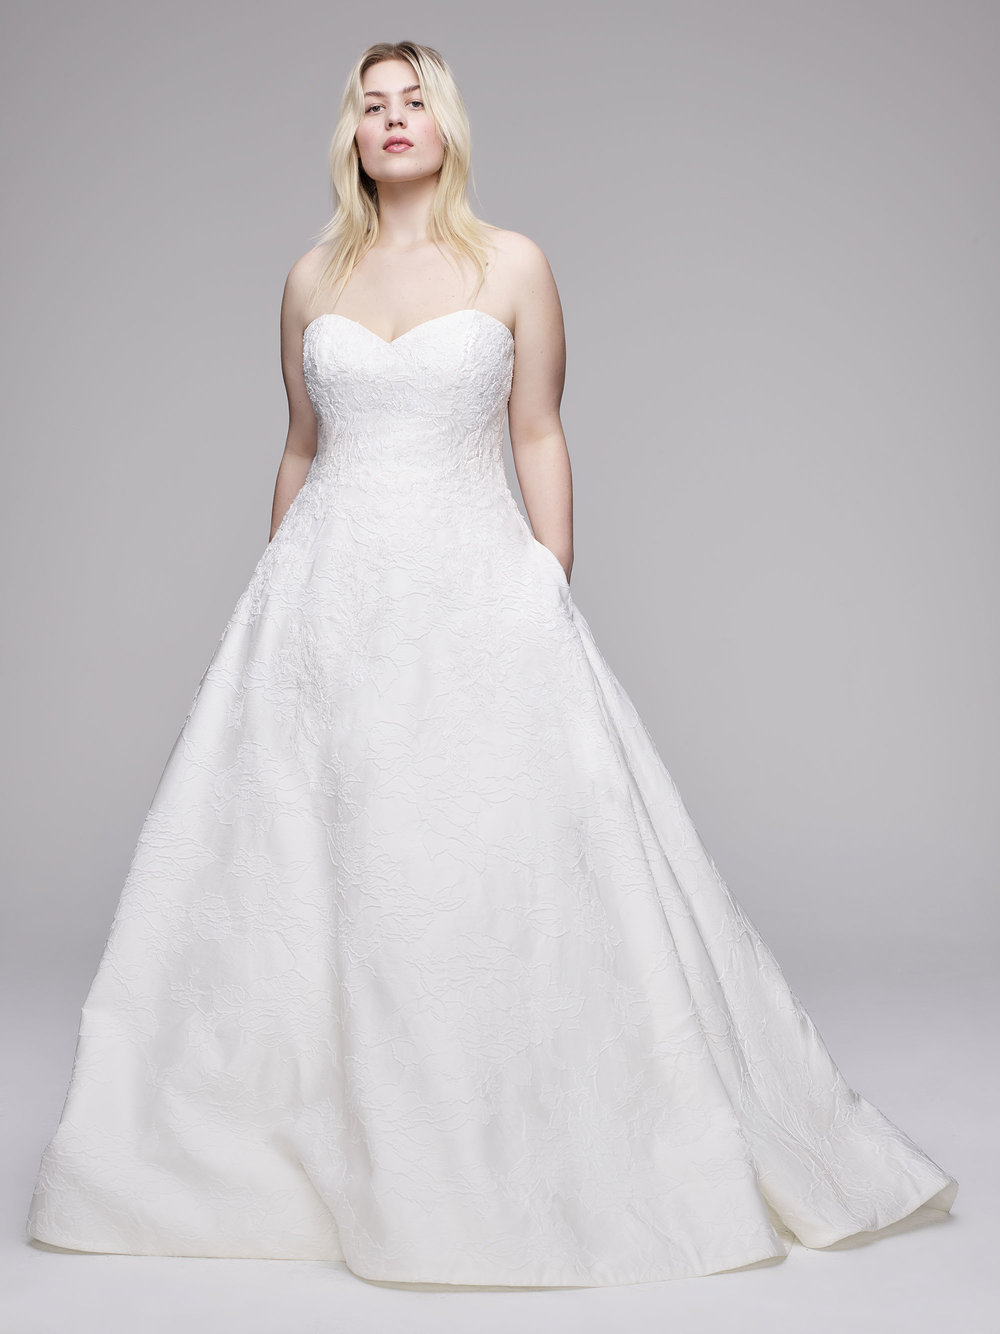 The Burton plus size wedding gown from Curve Couture by Anne Barge